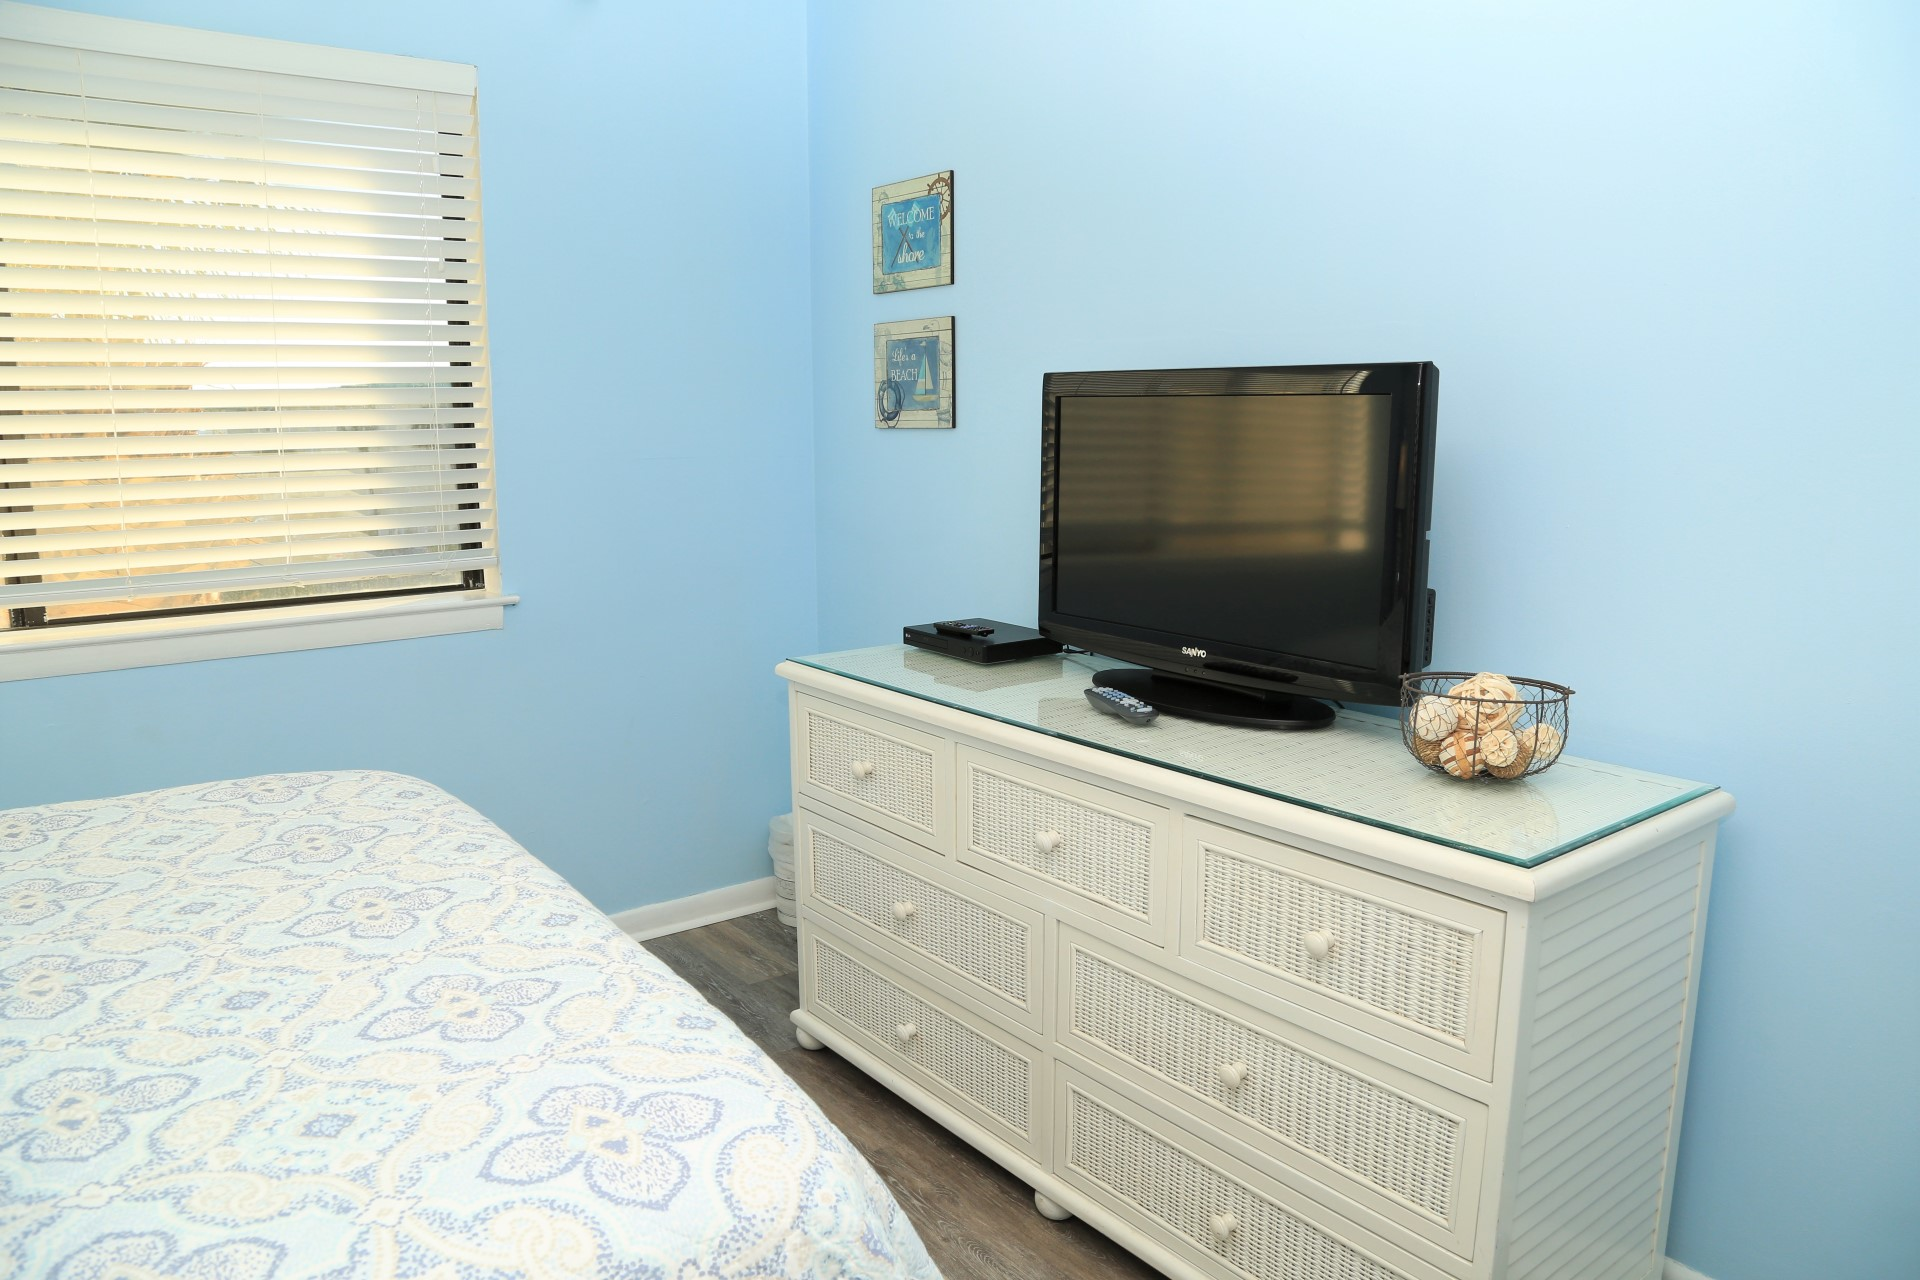 Bright and relaxing bedroom with dresser and closet for stor